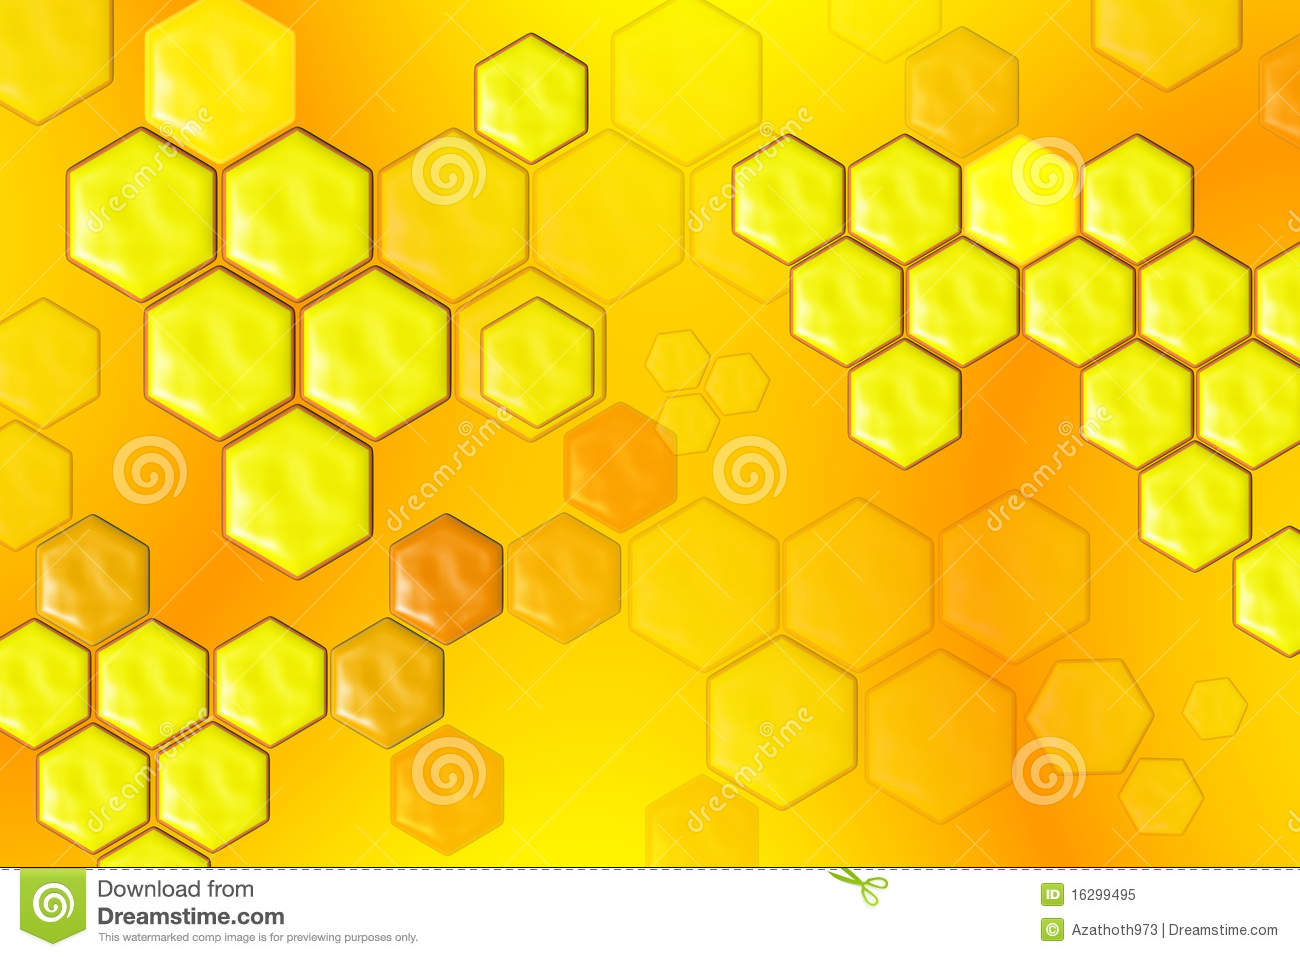 Cartoon Animation Wallpaper Free Download Abstract Honeycomb Composition Royalty Free Stock Photo